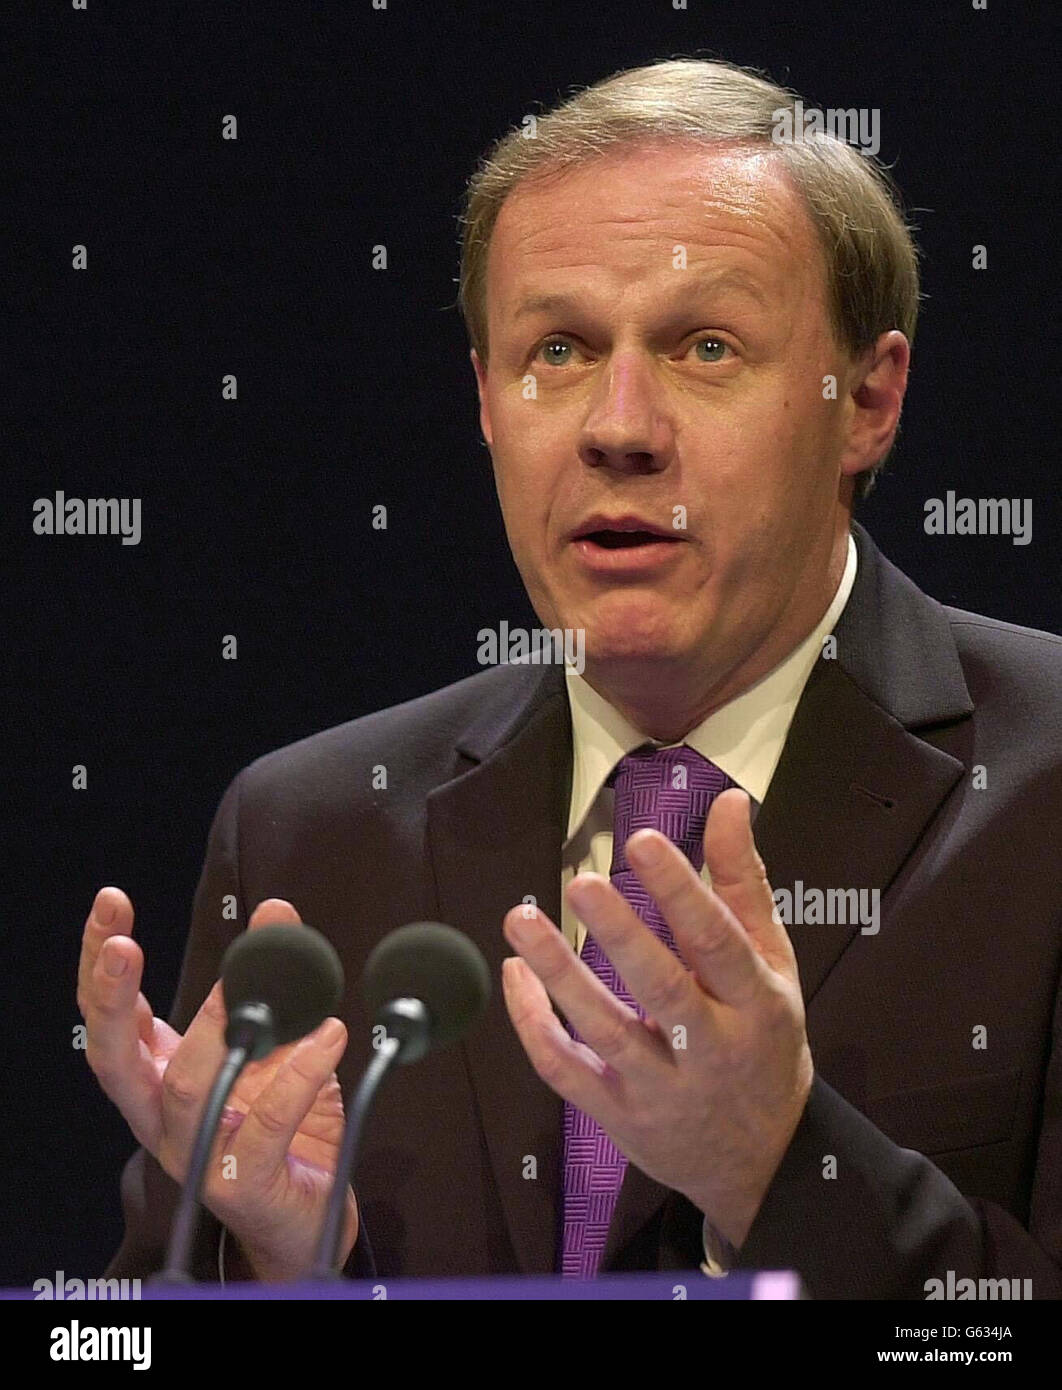 Damian Green - Tory Conference - Stock Image